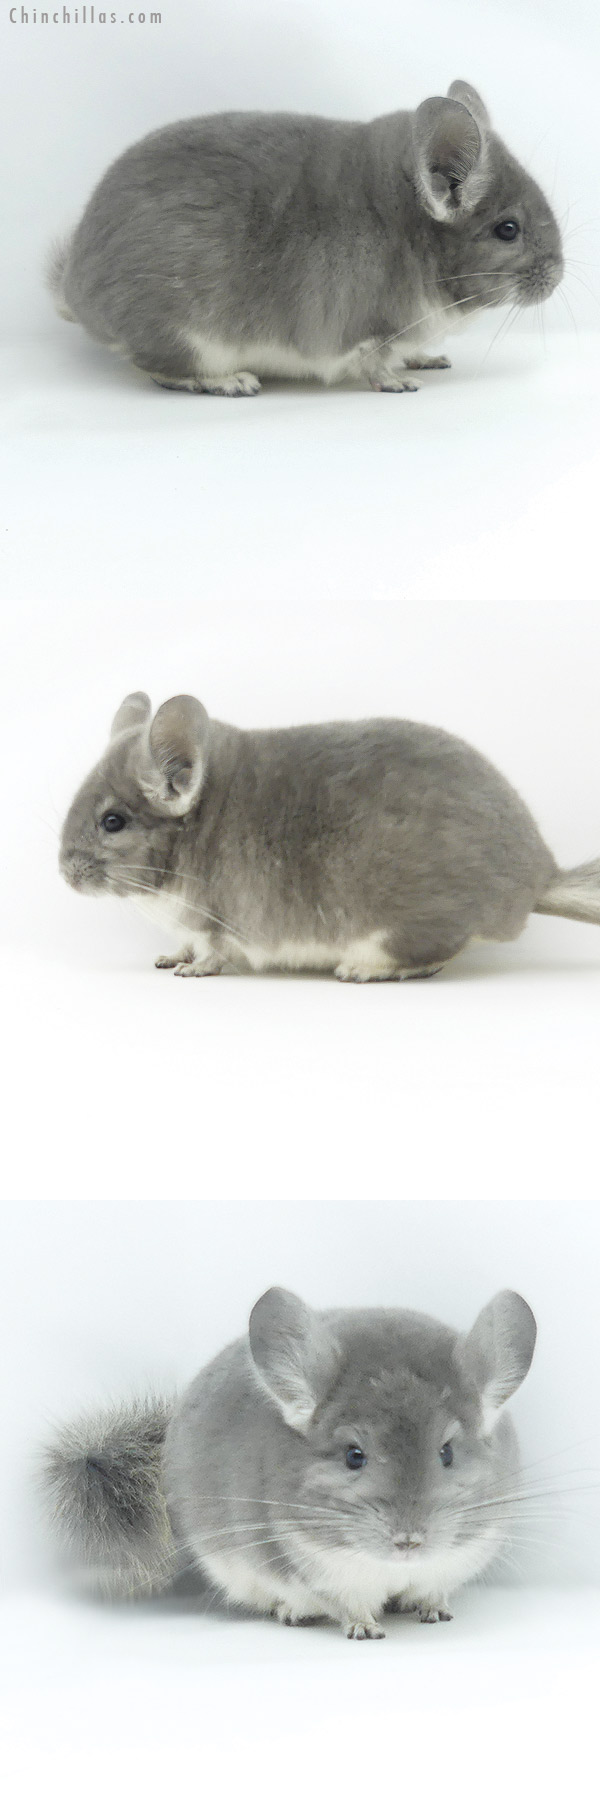 19379 Blocky Show Quality Violet Male Chinchilla